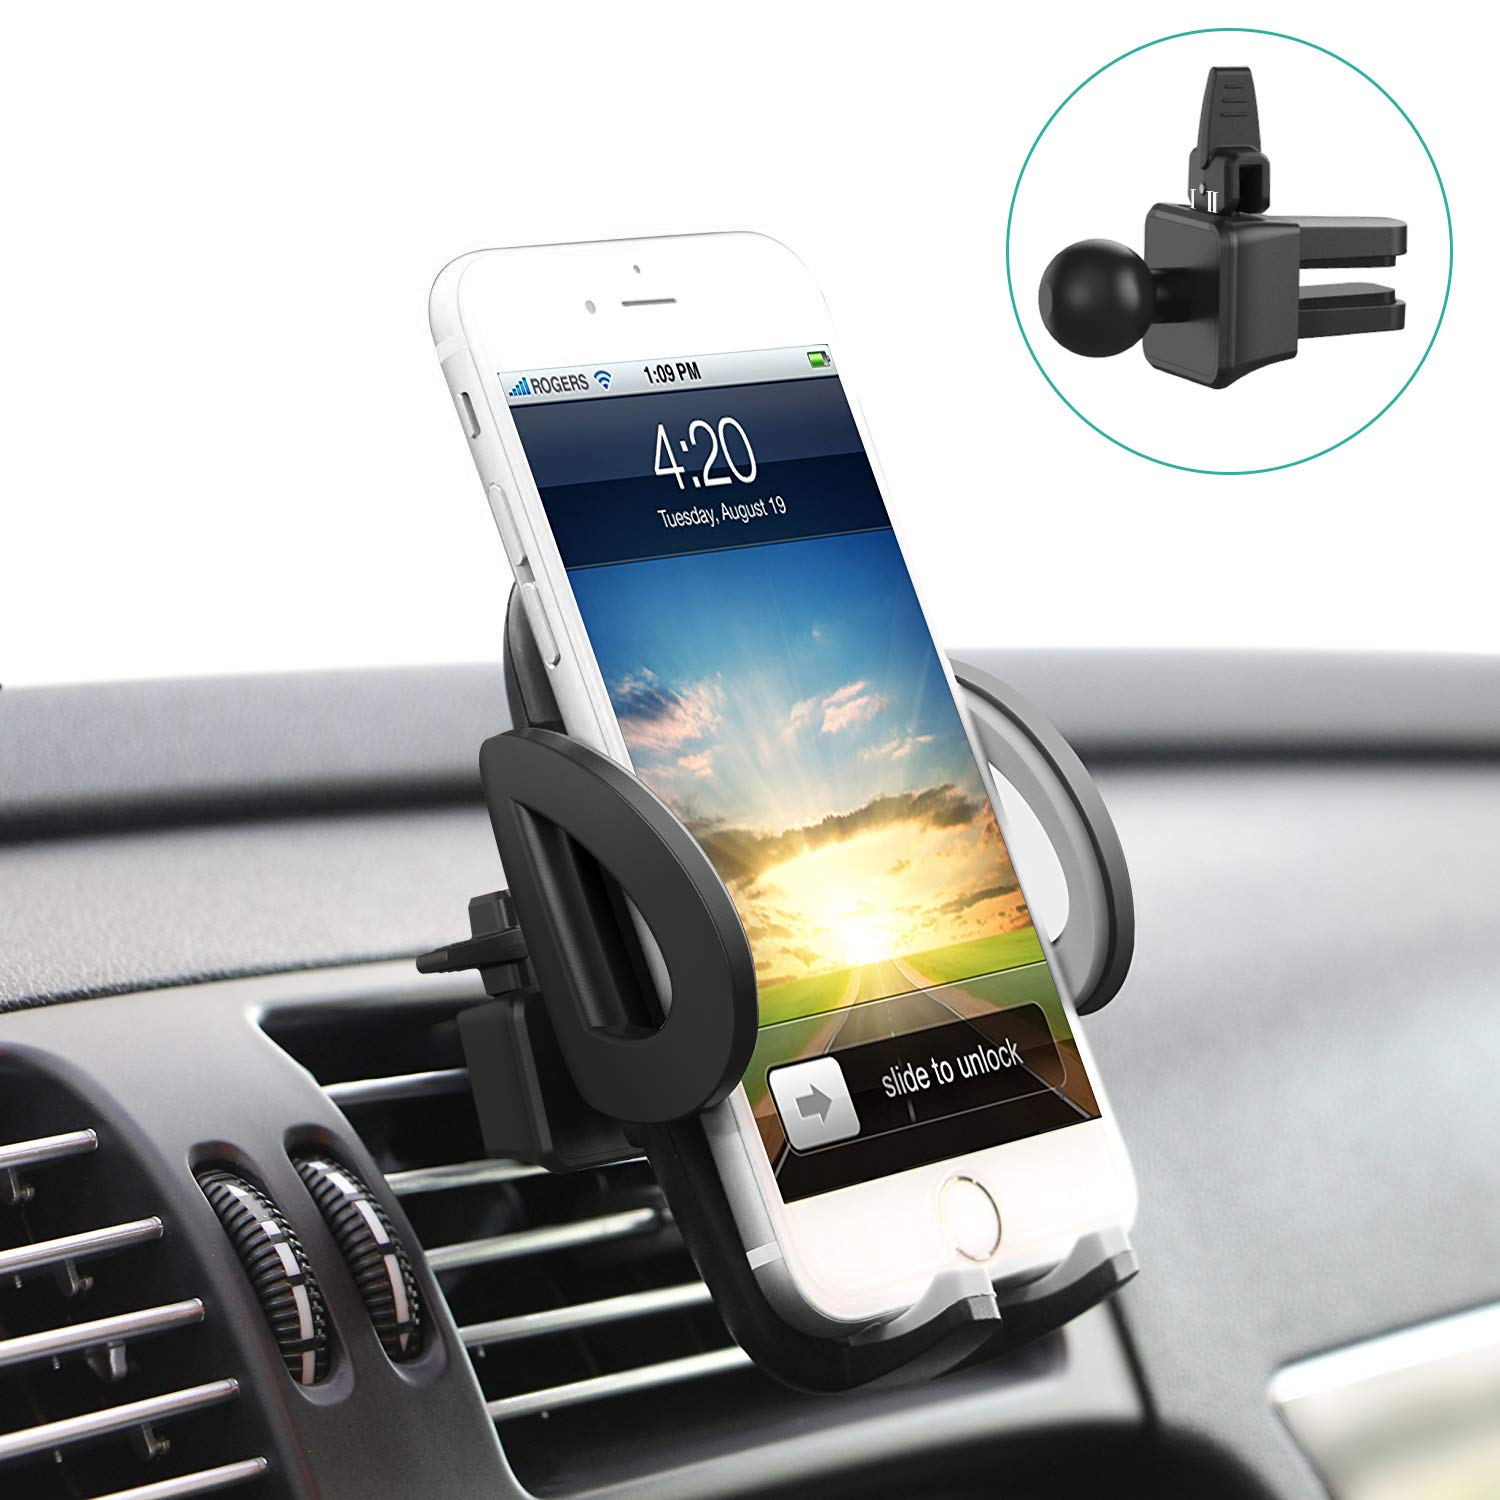 Phone Holder, Avolare Car Phone Holder Universal Air Vent Car Holder  360°Rotation Adjustable Car Mount Hands Free Driving for iPhone X 8 7 7  Plus 6s 6